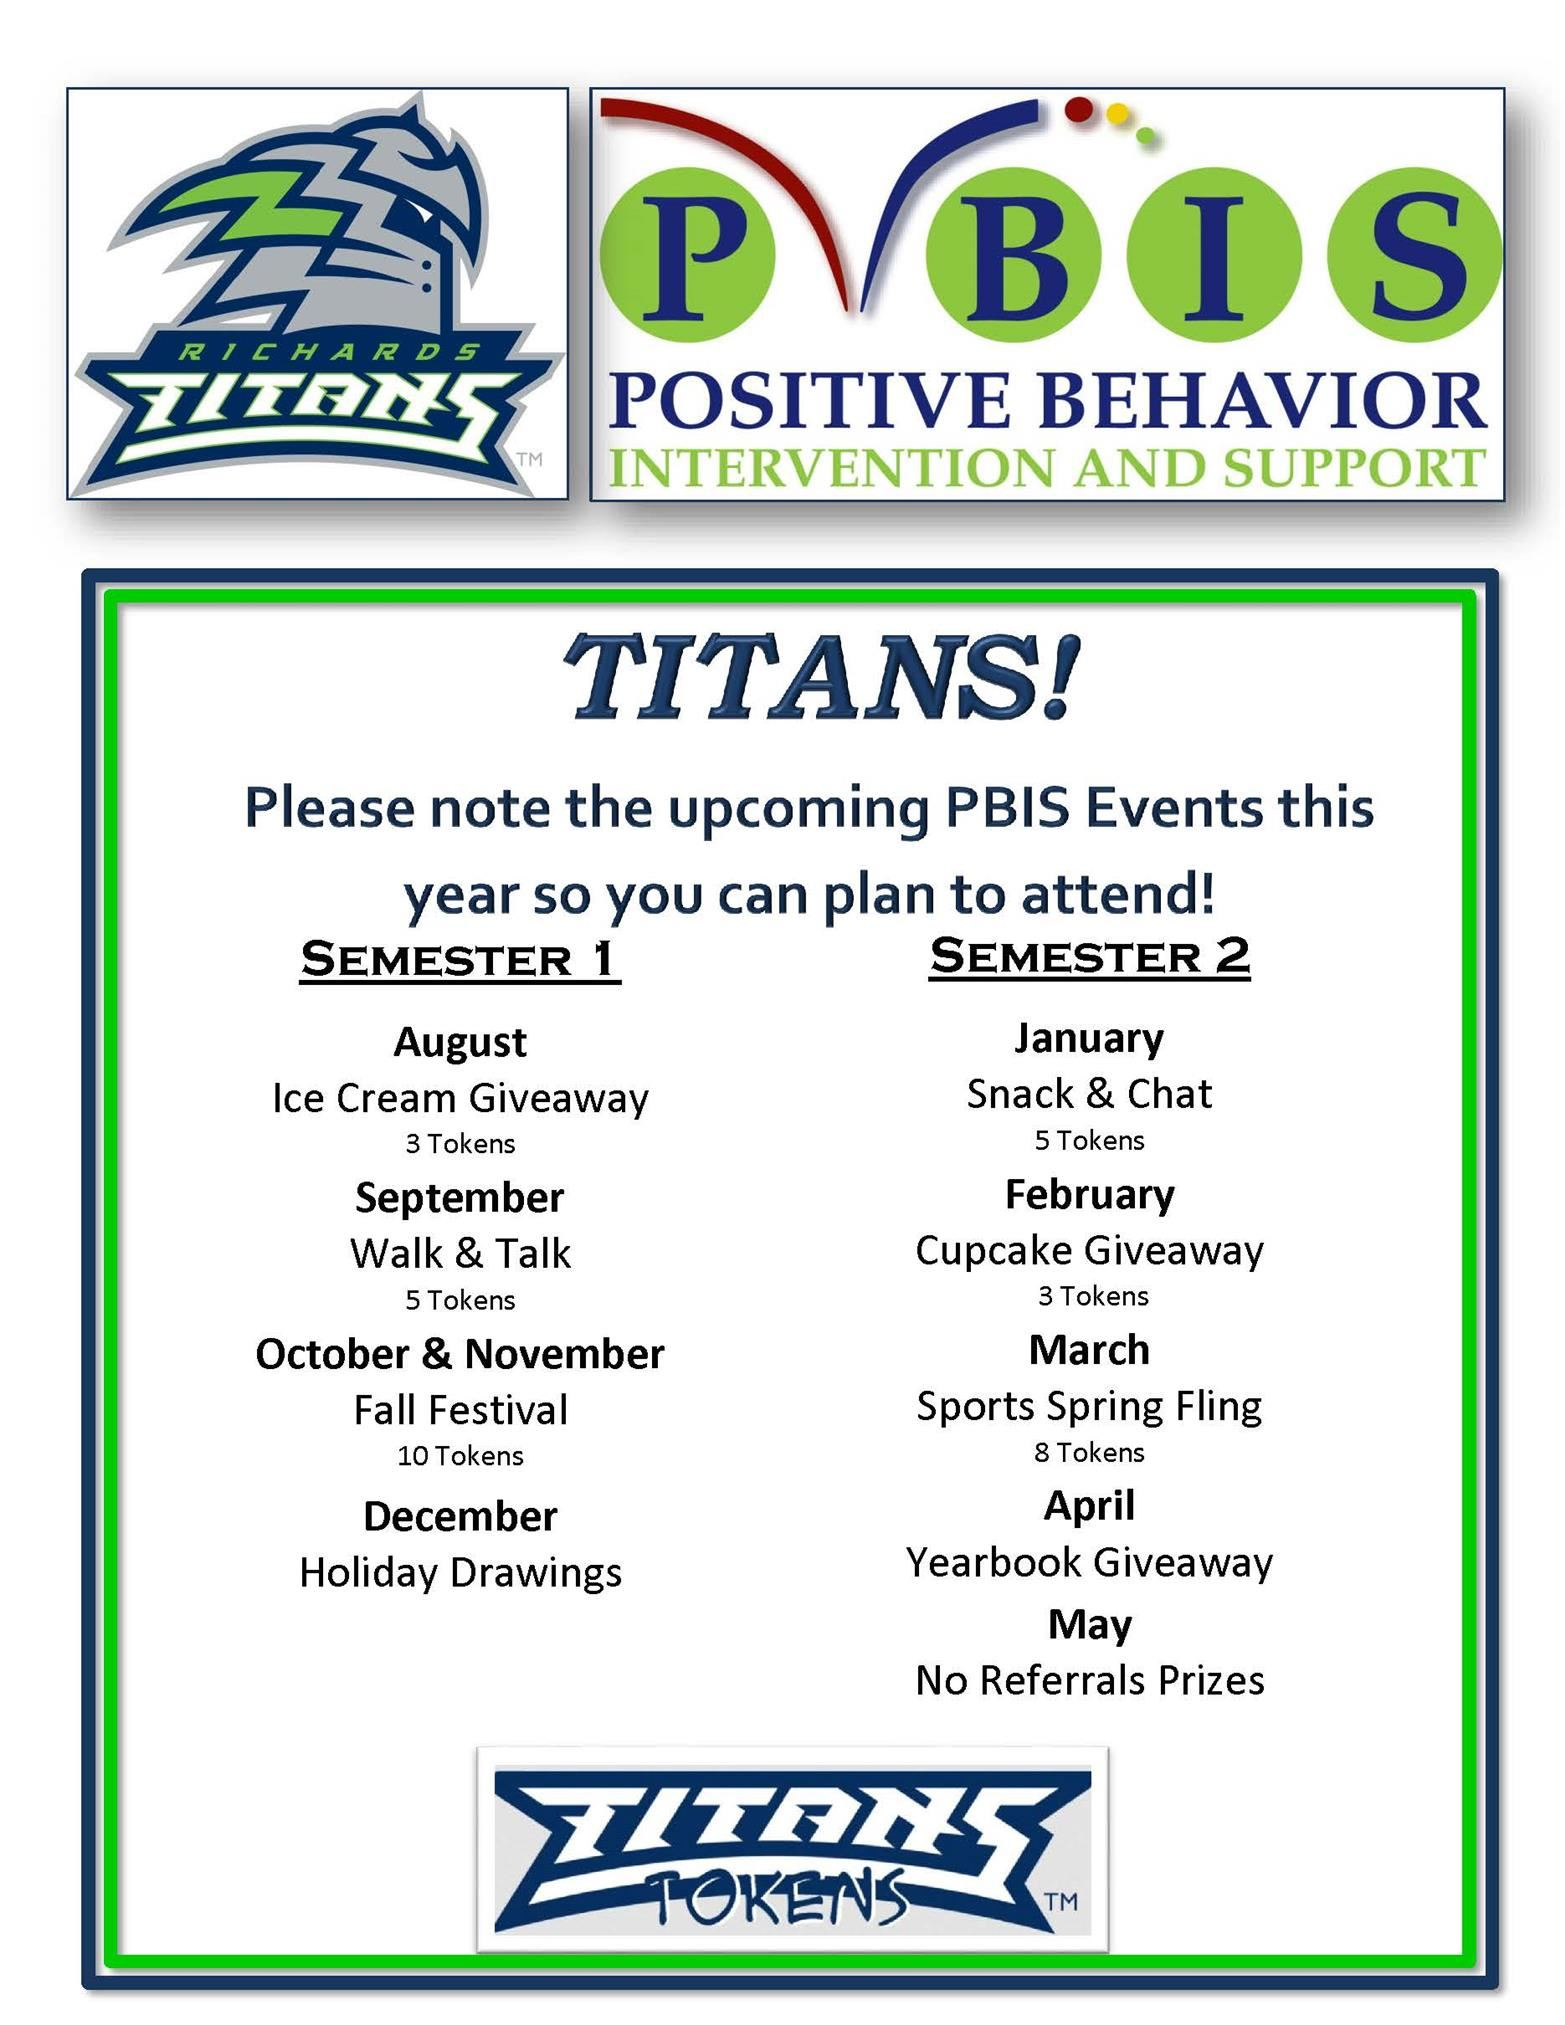 Poster Listing PBIS Events for 2019-2020